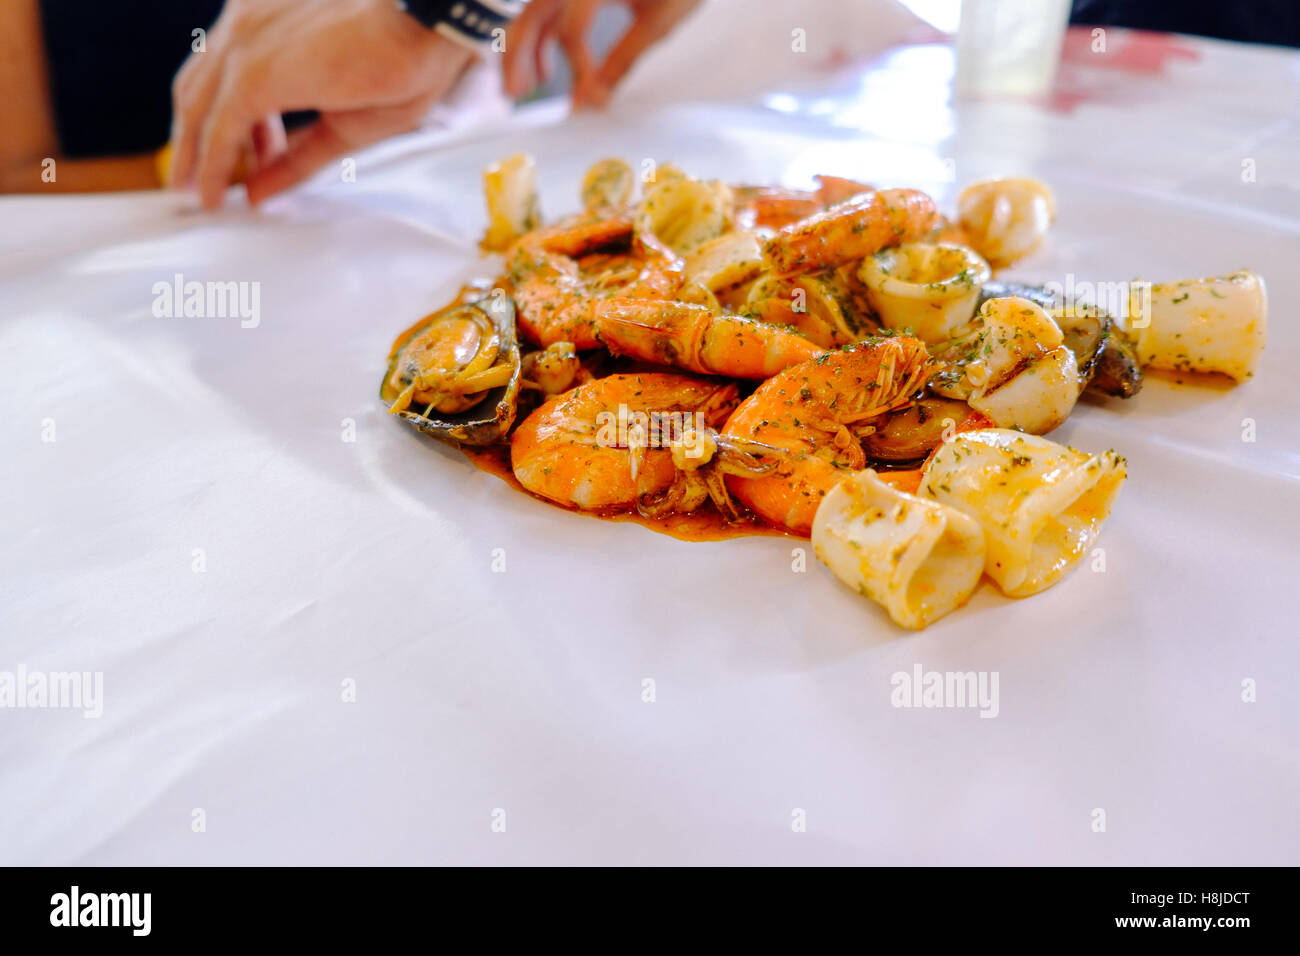 Crustacean seafood with mussels, oysters and shrimps on the table and white wax paper, selective focus, Food background. - Stock Image